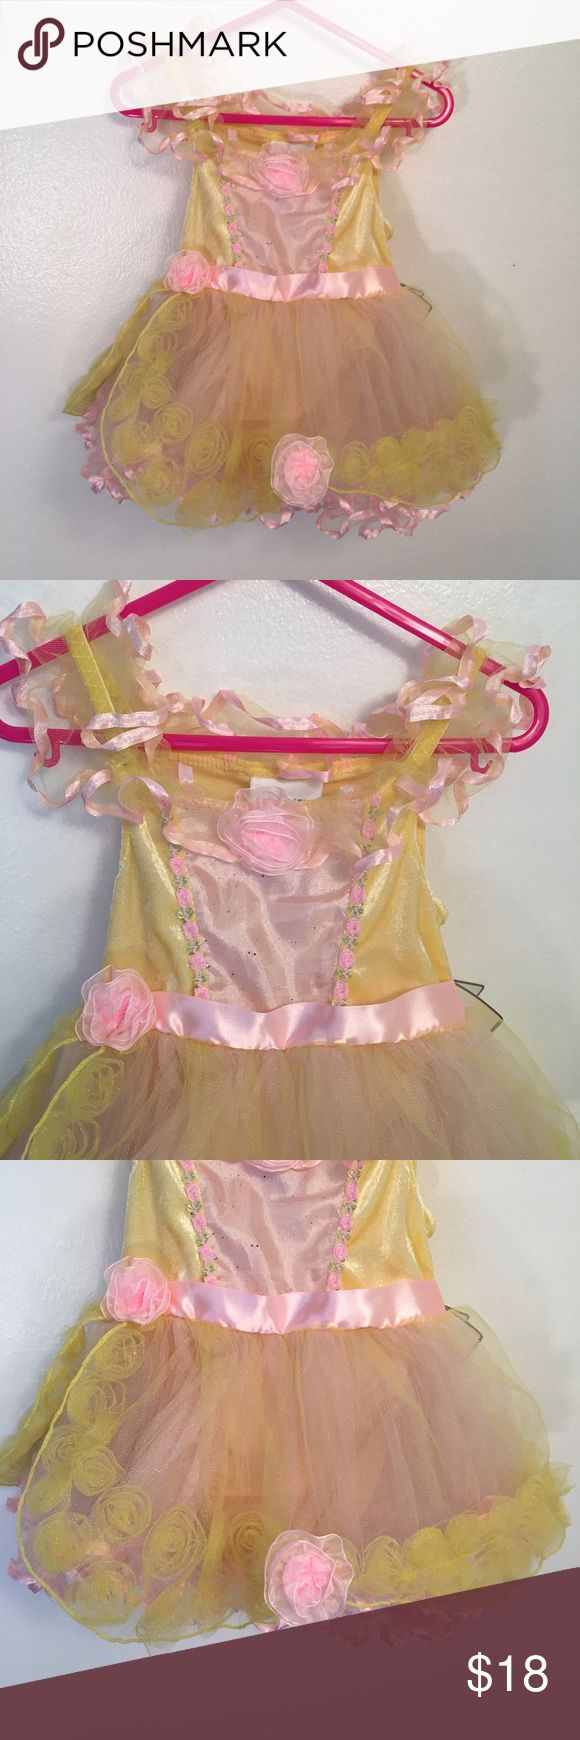 Disney Store Princess Dress Adorable princess dress from the Disney Store. Pale yellow and pink. Snaps at bottom of leotard. Disney Store Costumes